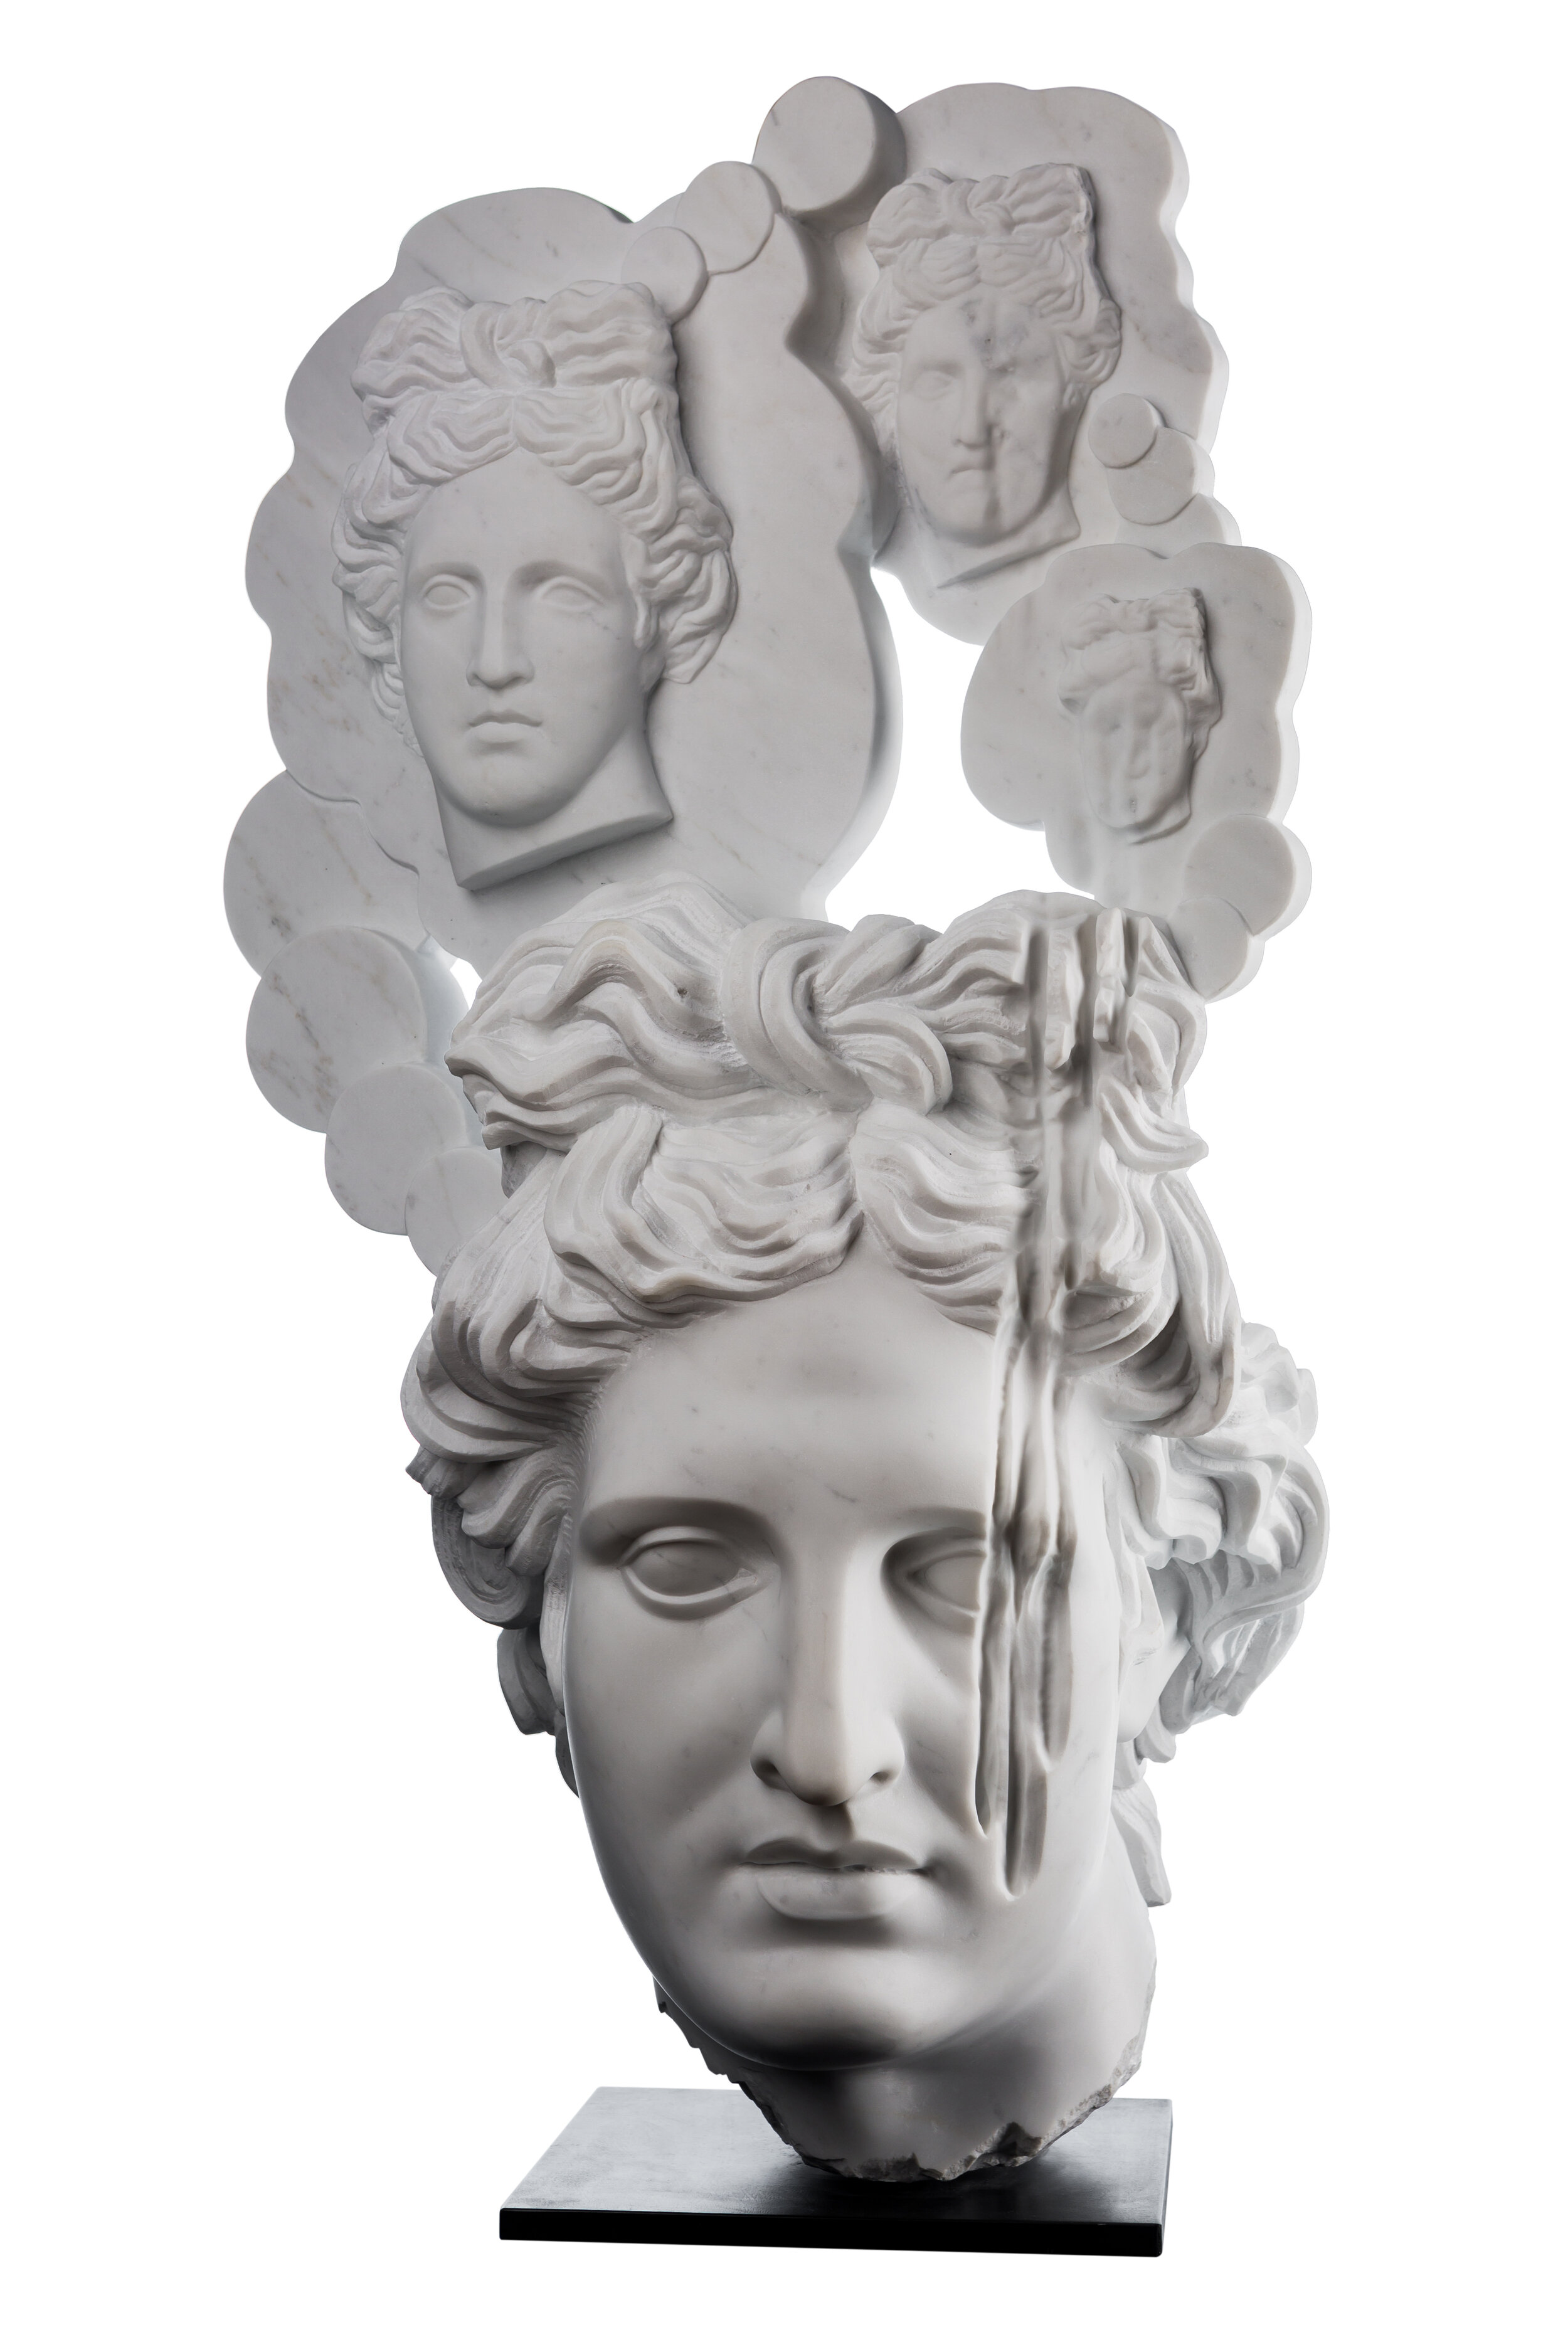 Narcissus, 2018, Marble 22 2/5 x 41 3/10 x 18 1/2 in (57 x 105 x 47 cm)